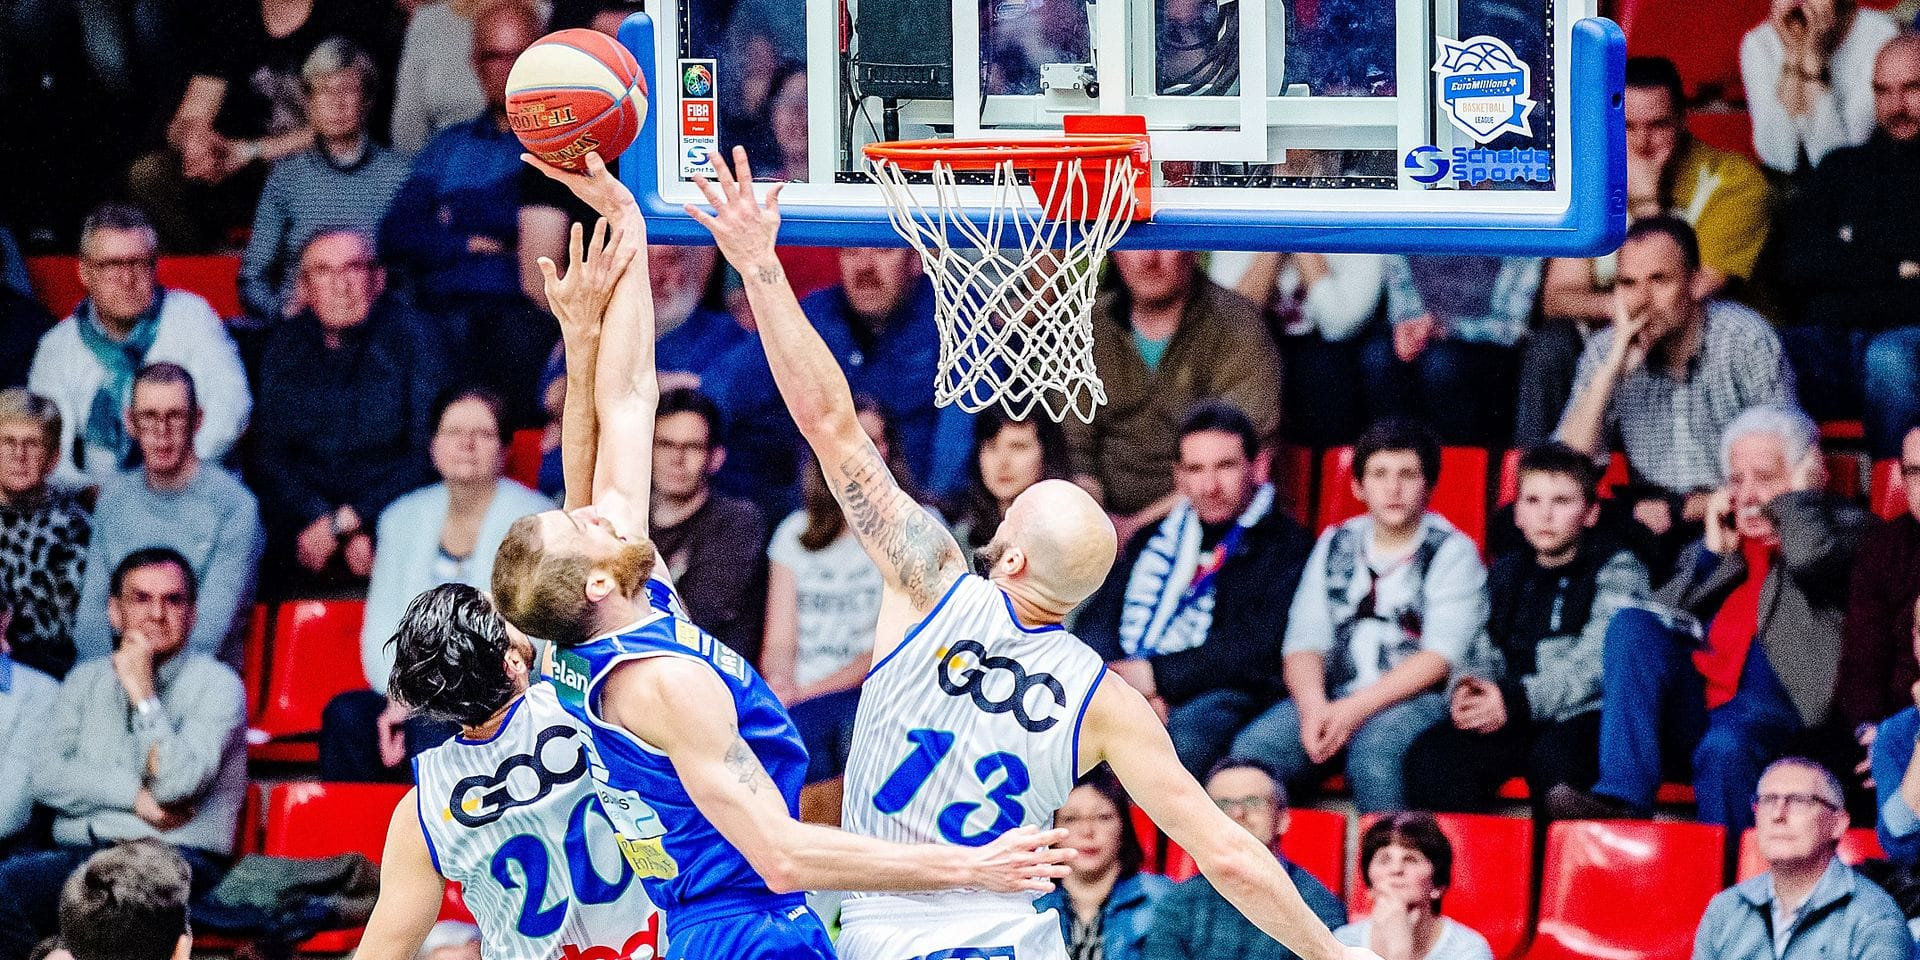 players fight for the ball during the first half of the basketball match between Okapi Aalstar and Mons-Hainaut, Saturday 23 March 2019 in Aalst, on day 20 of the 'EuroMillions League' Belgian first division. BELGA PHOTO JONAS ROOSENS